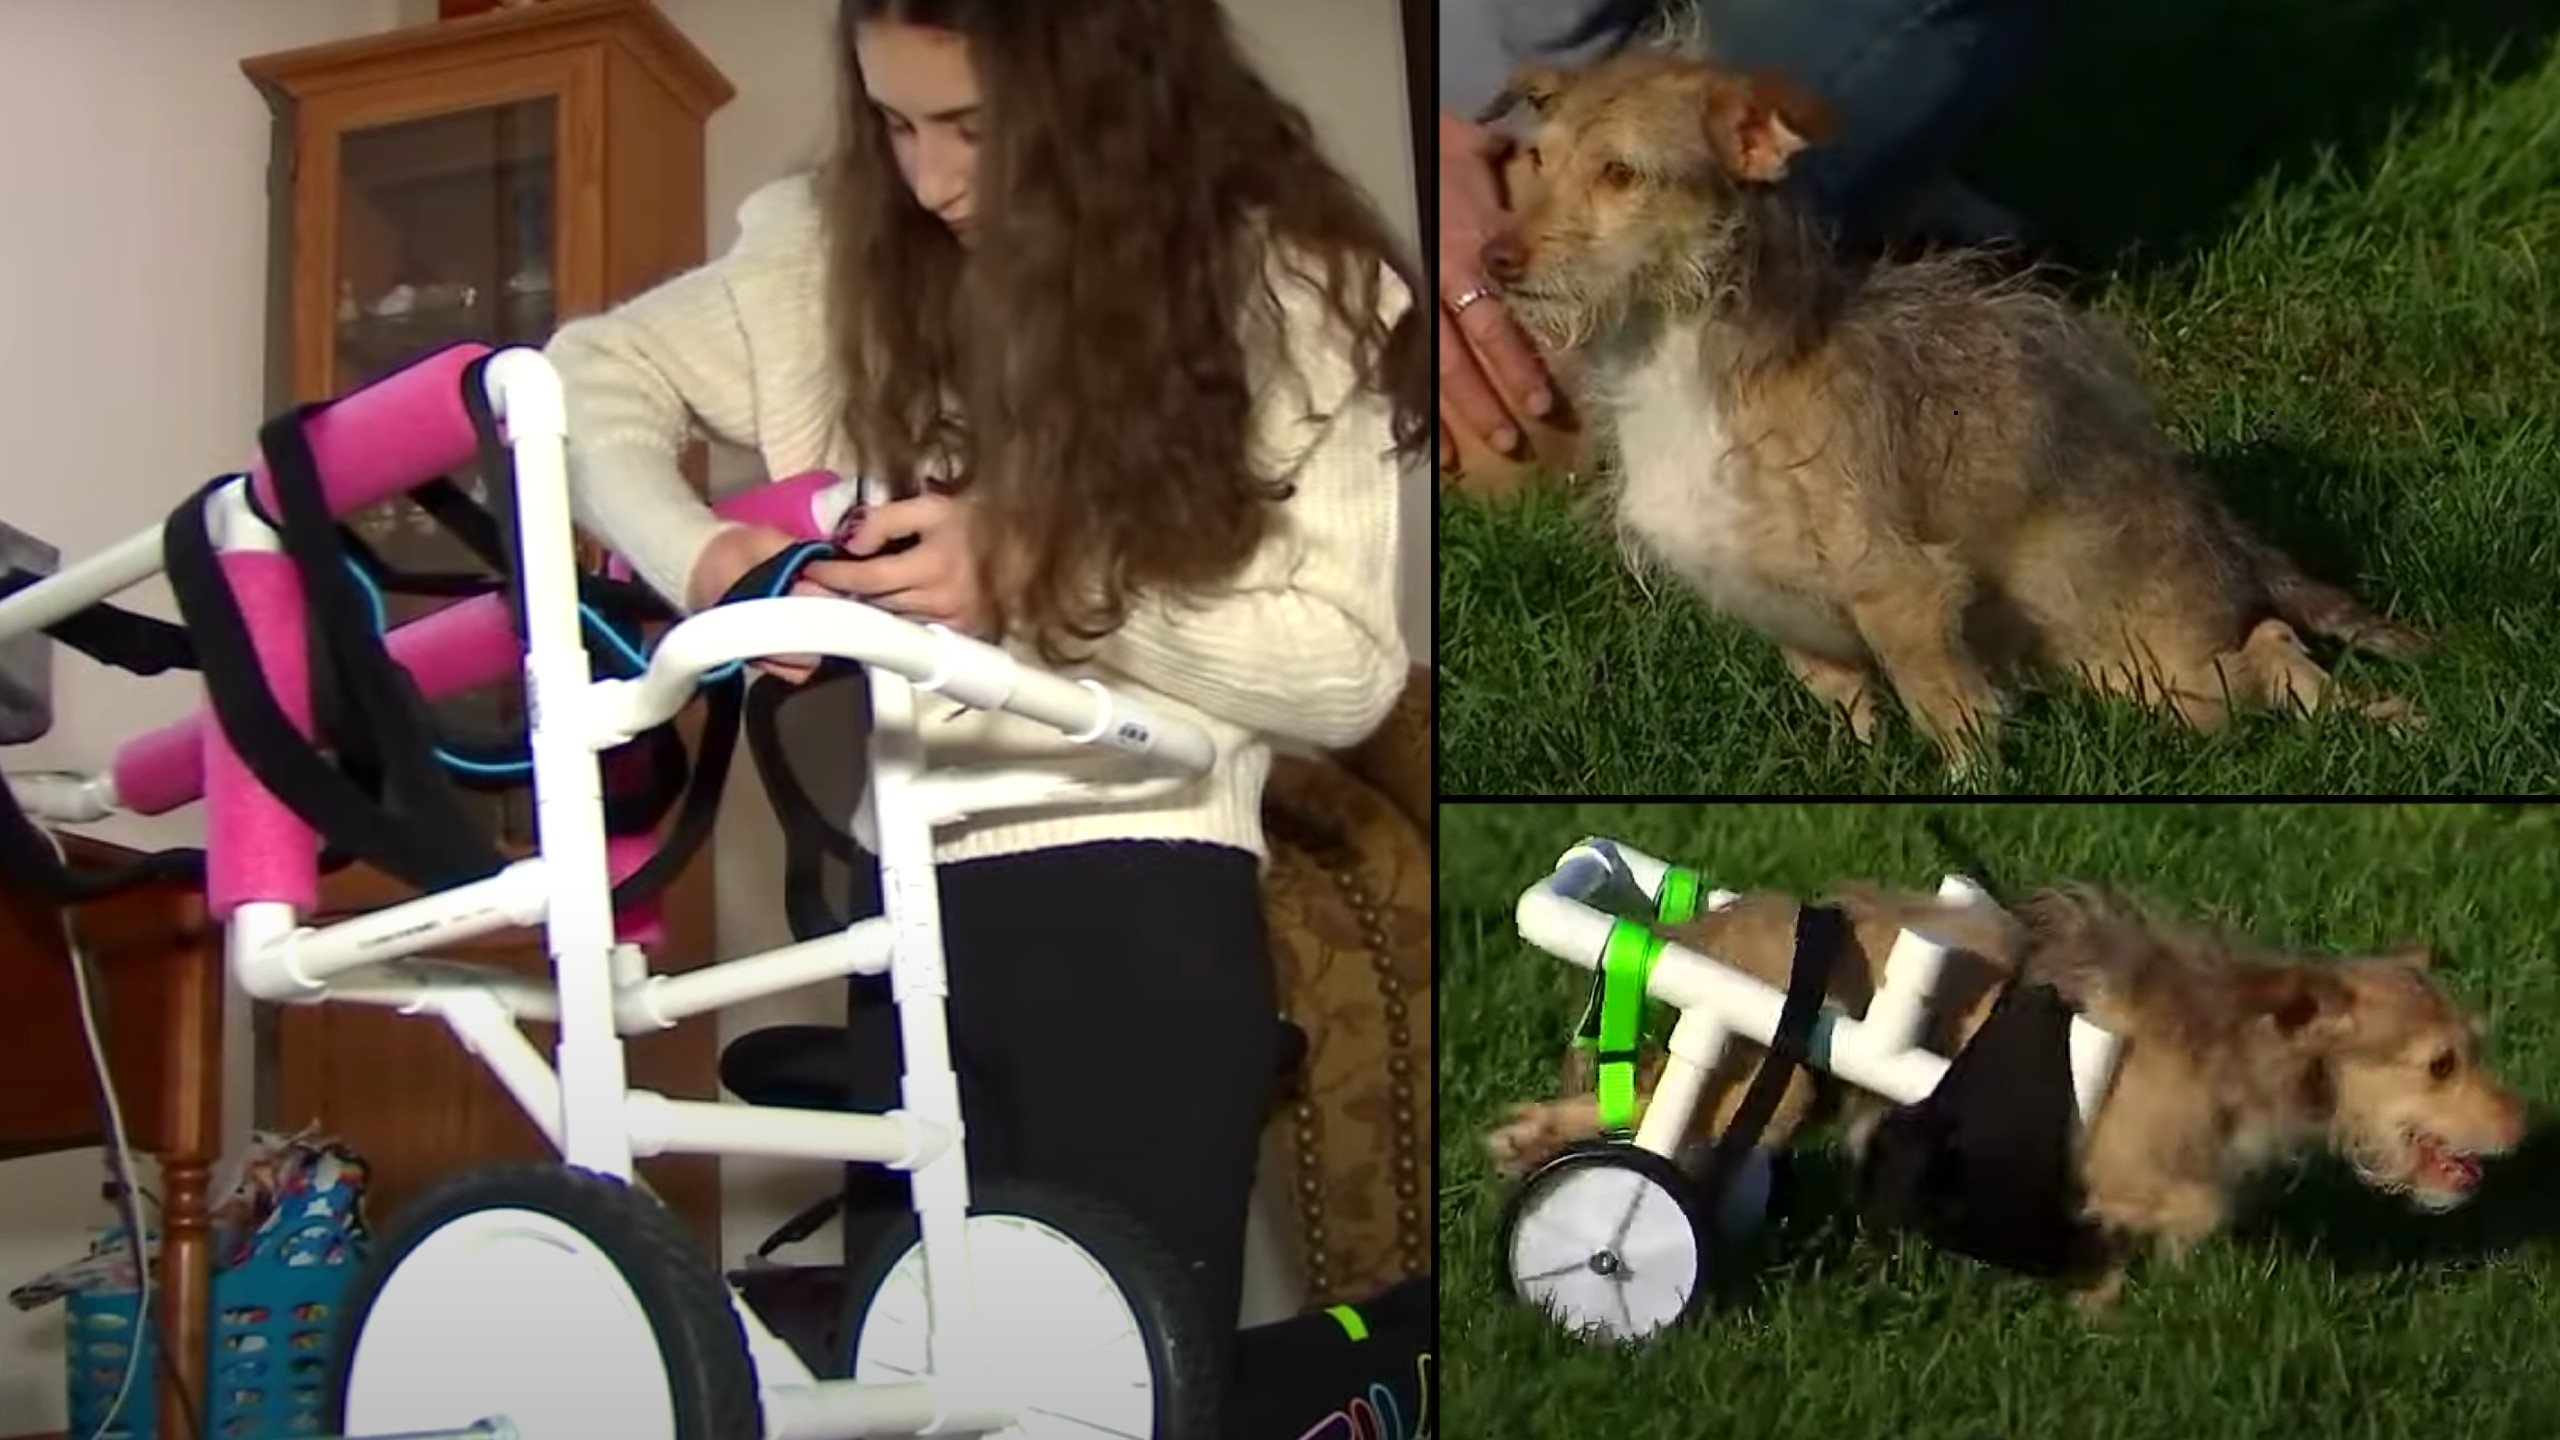 Teen builds wheelchairs for animals in need